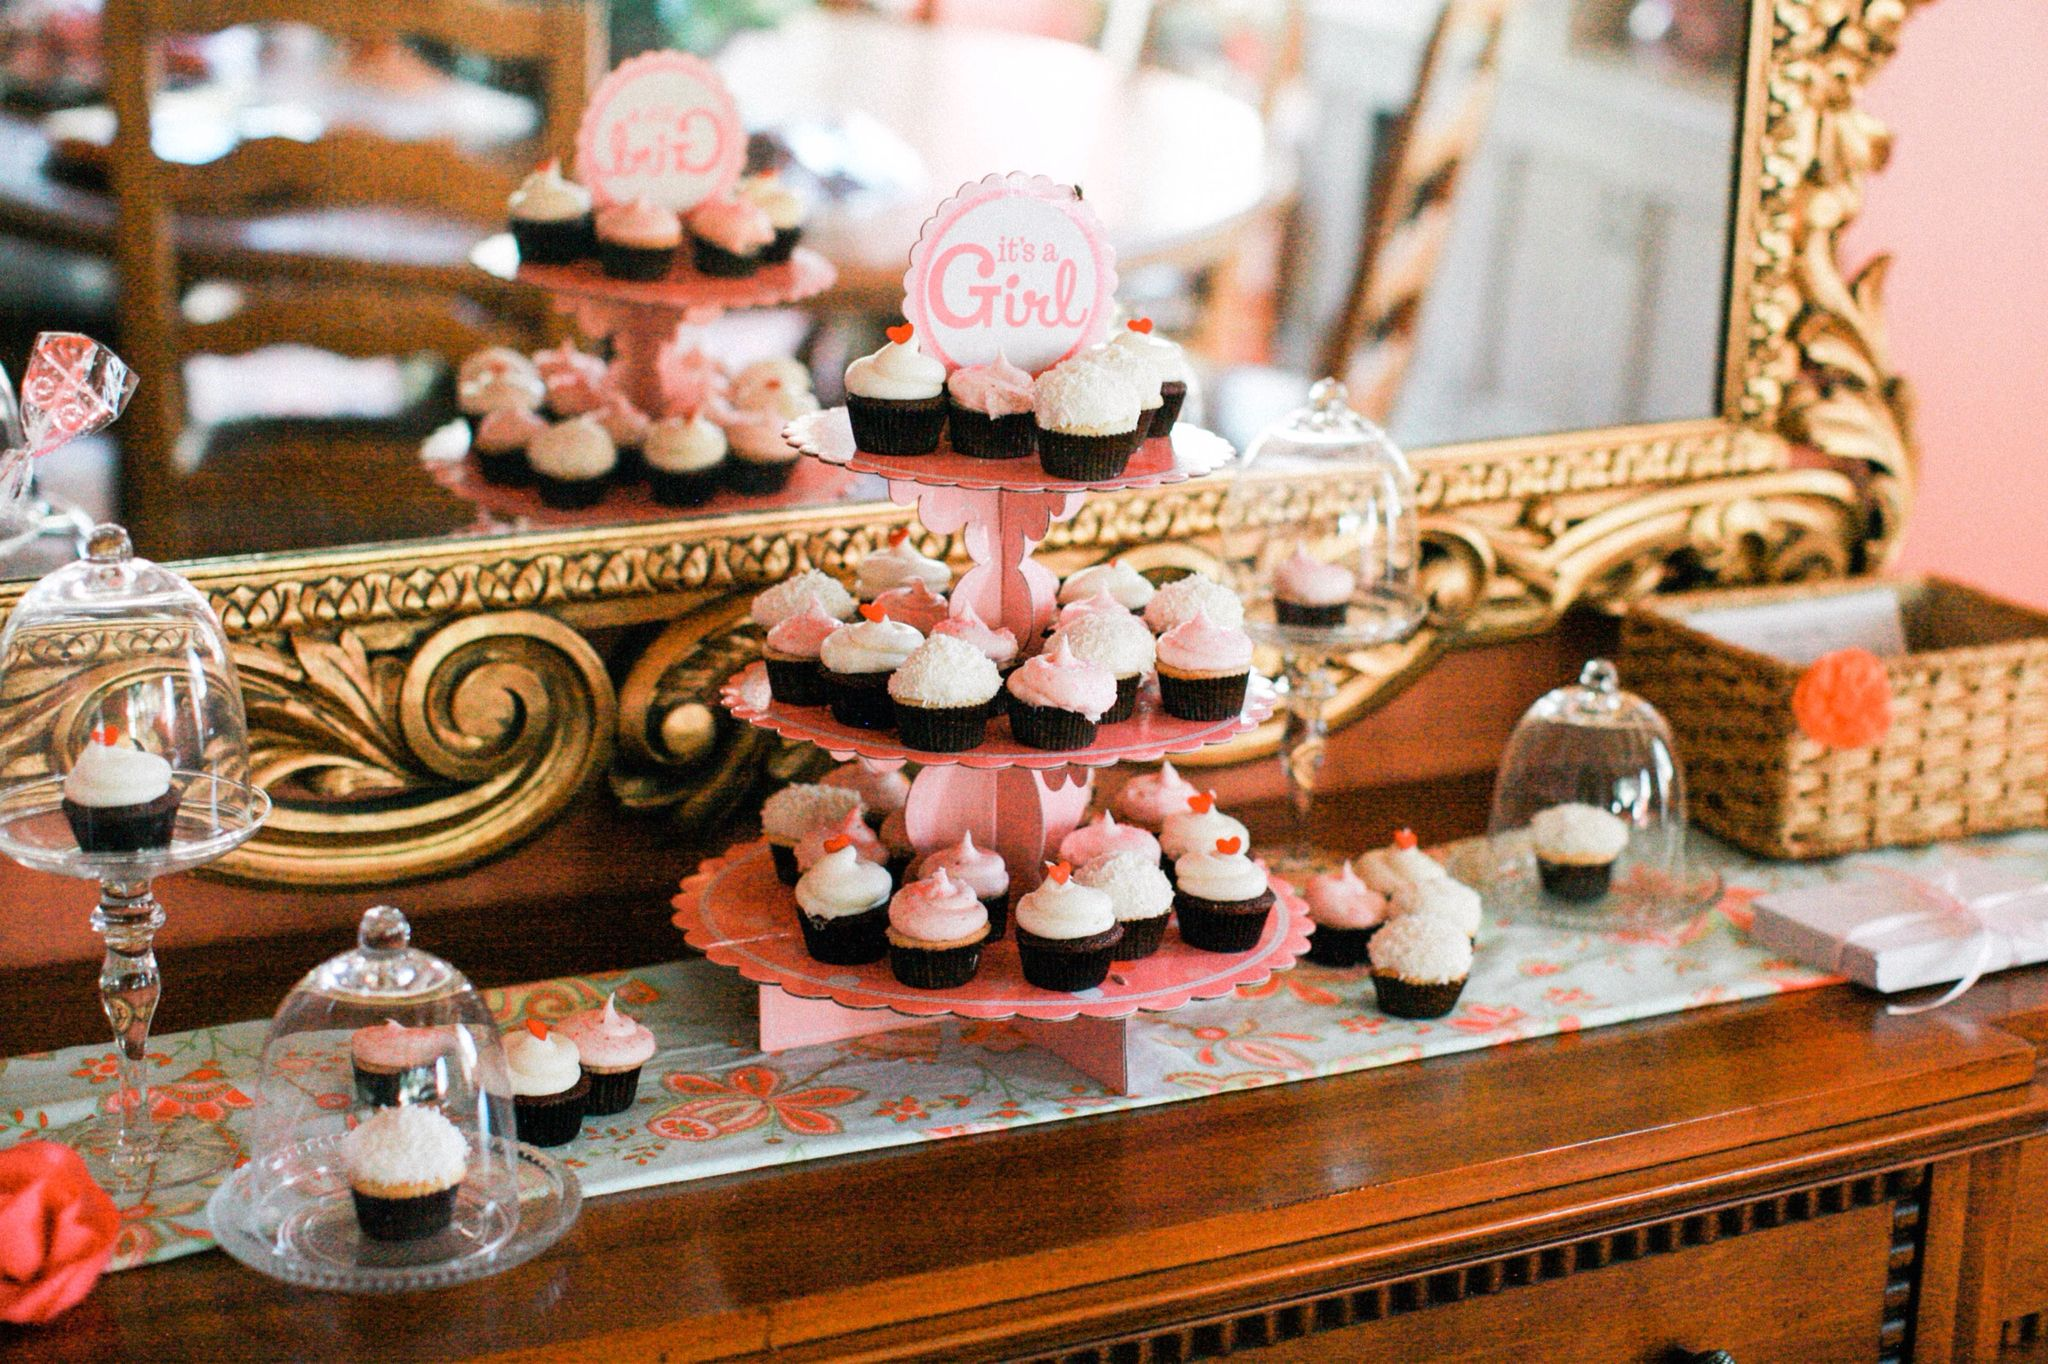 Mini cupcakes presentation for a baby girl shower. Photo by Diana Marie Photography